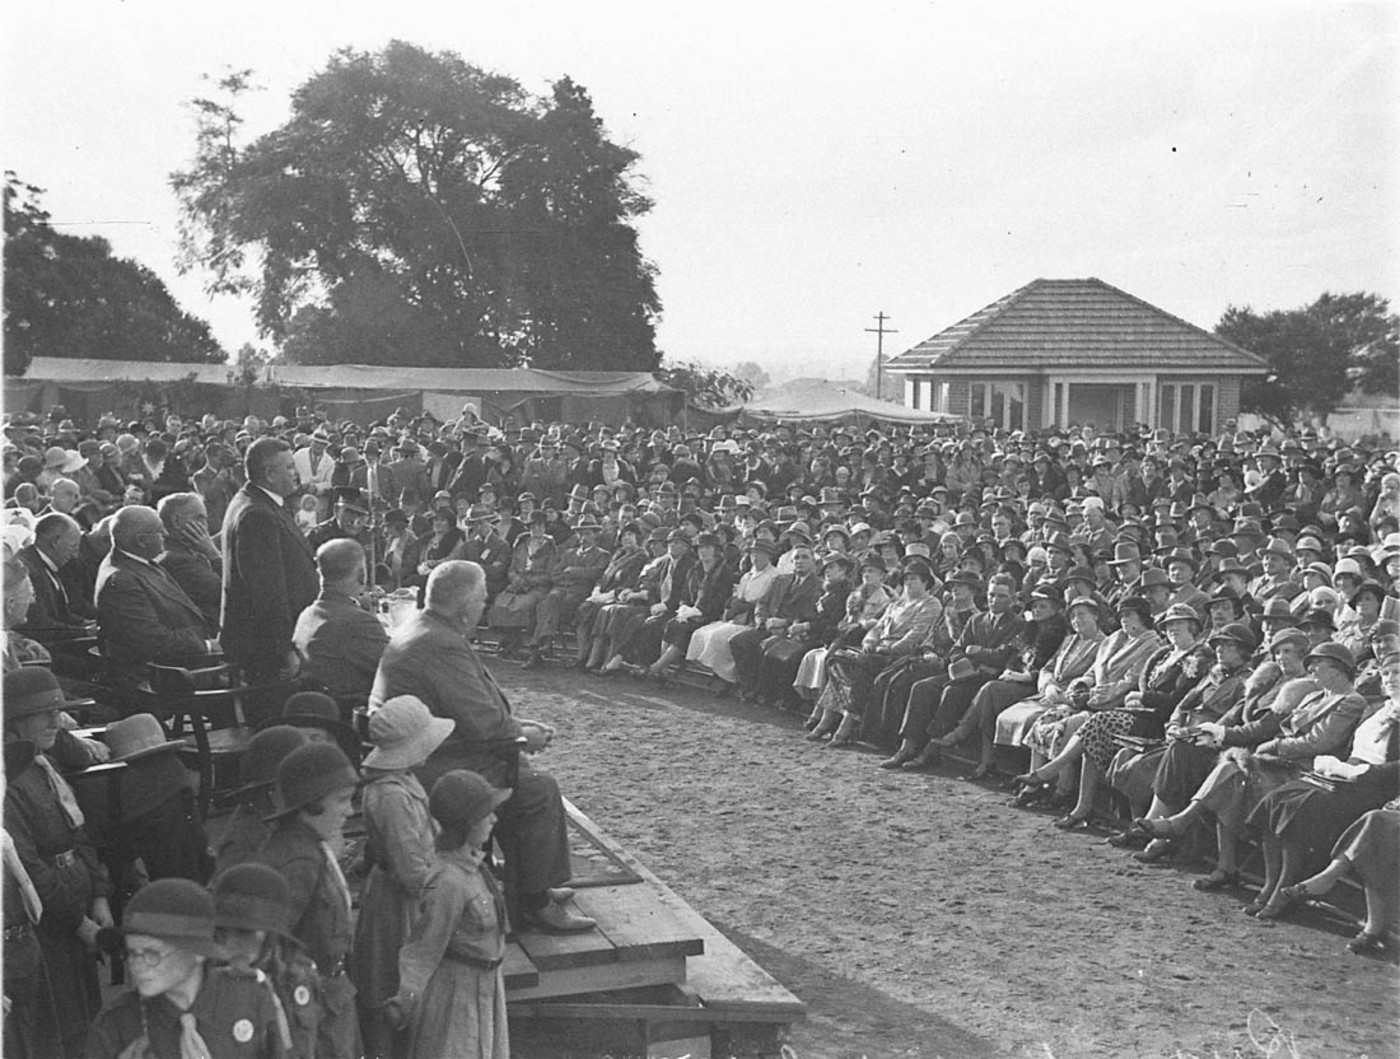 Black-and-white photo of a seated crowed arranged in a semicircle around an outside dais with a number of speakers